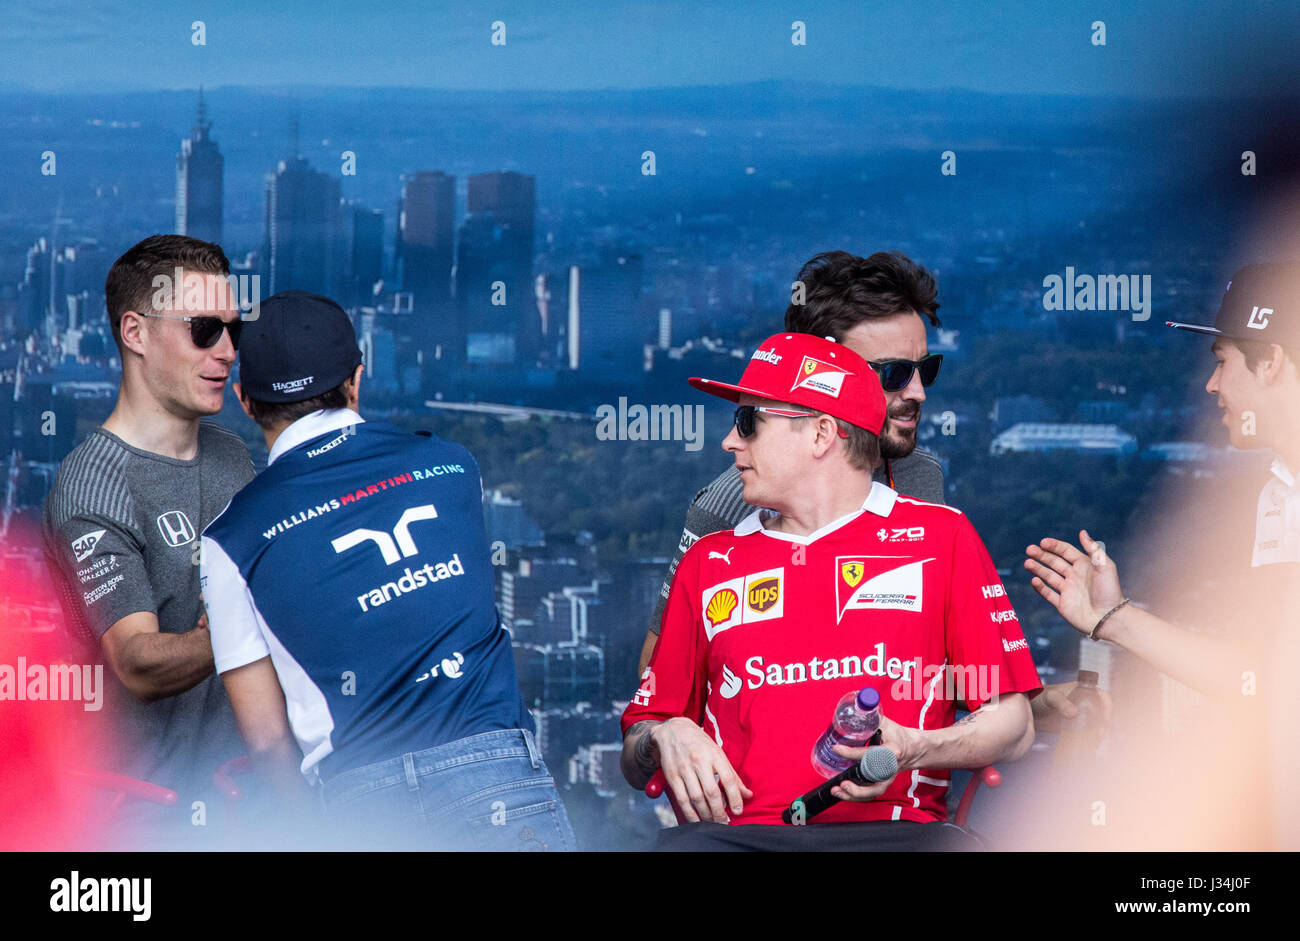 Drivers at the 2017 Australian Formula One Grand Prix - Stock Image